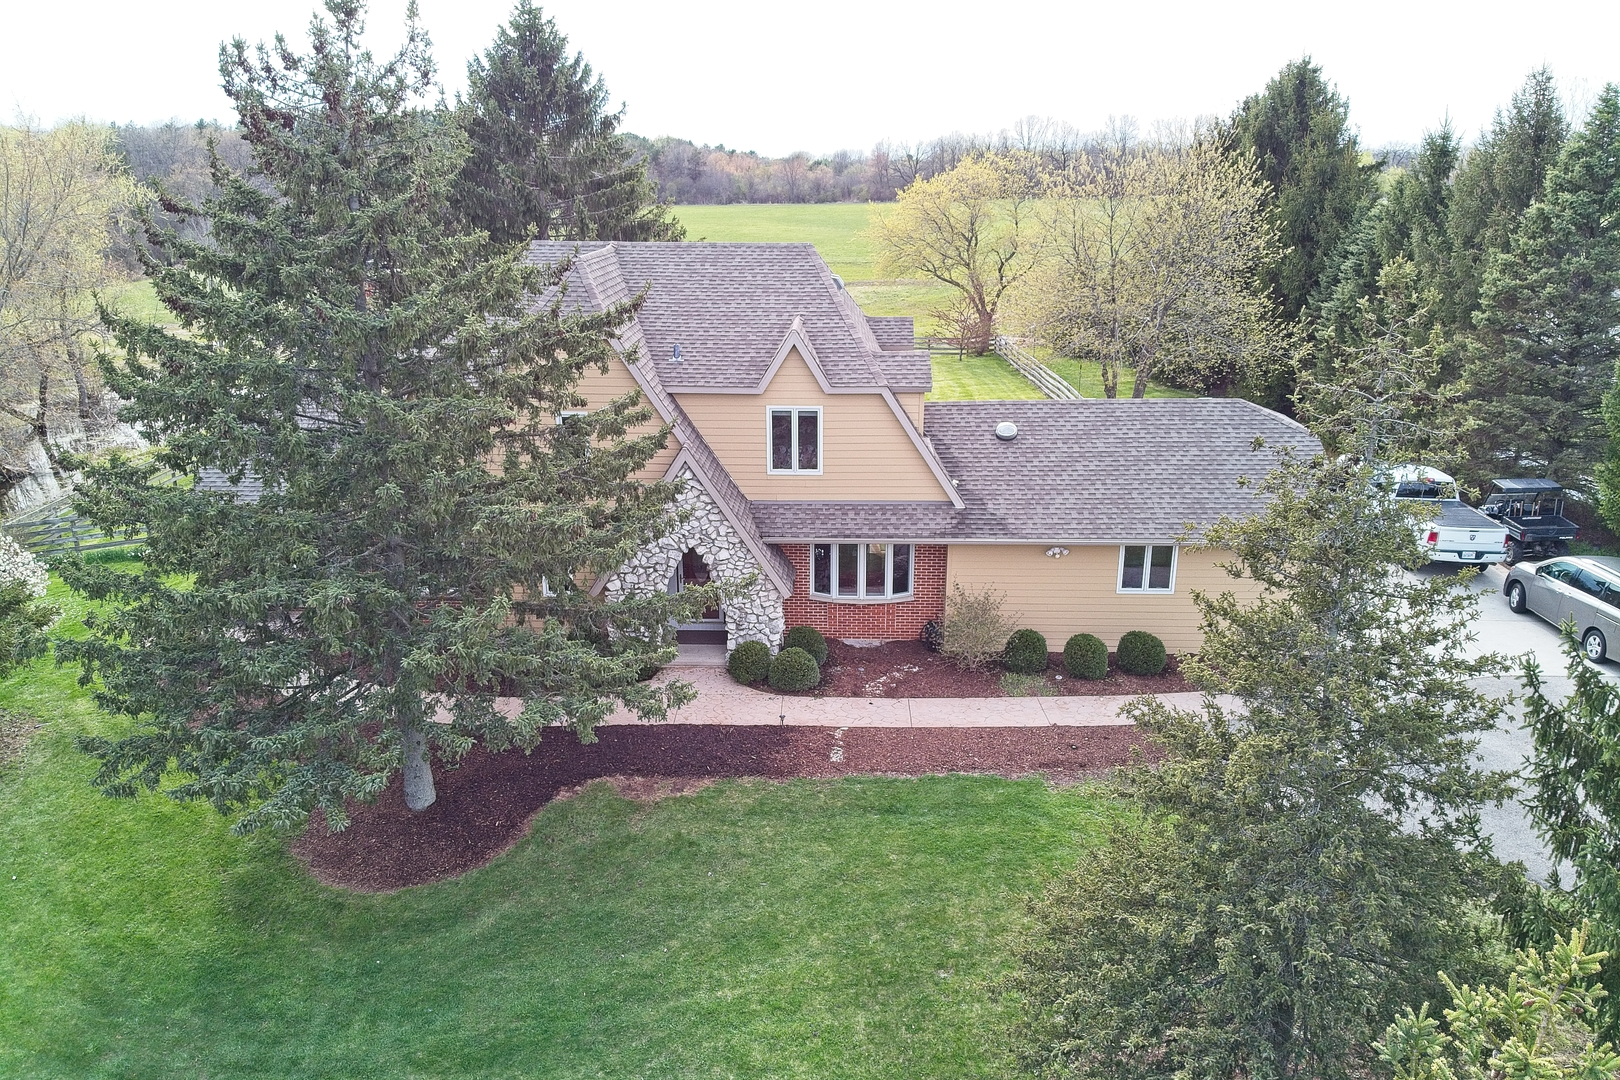 43030 North Hunt Club Road, Antioch, Illinois